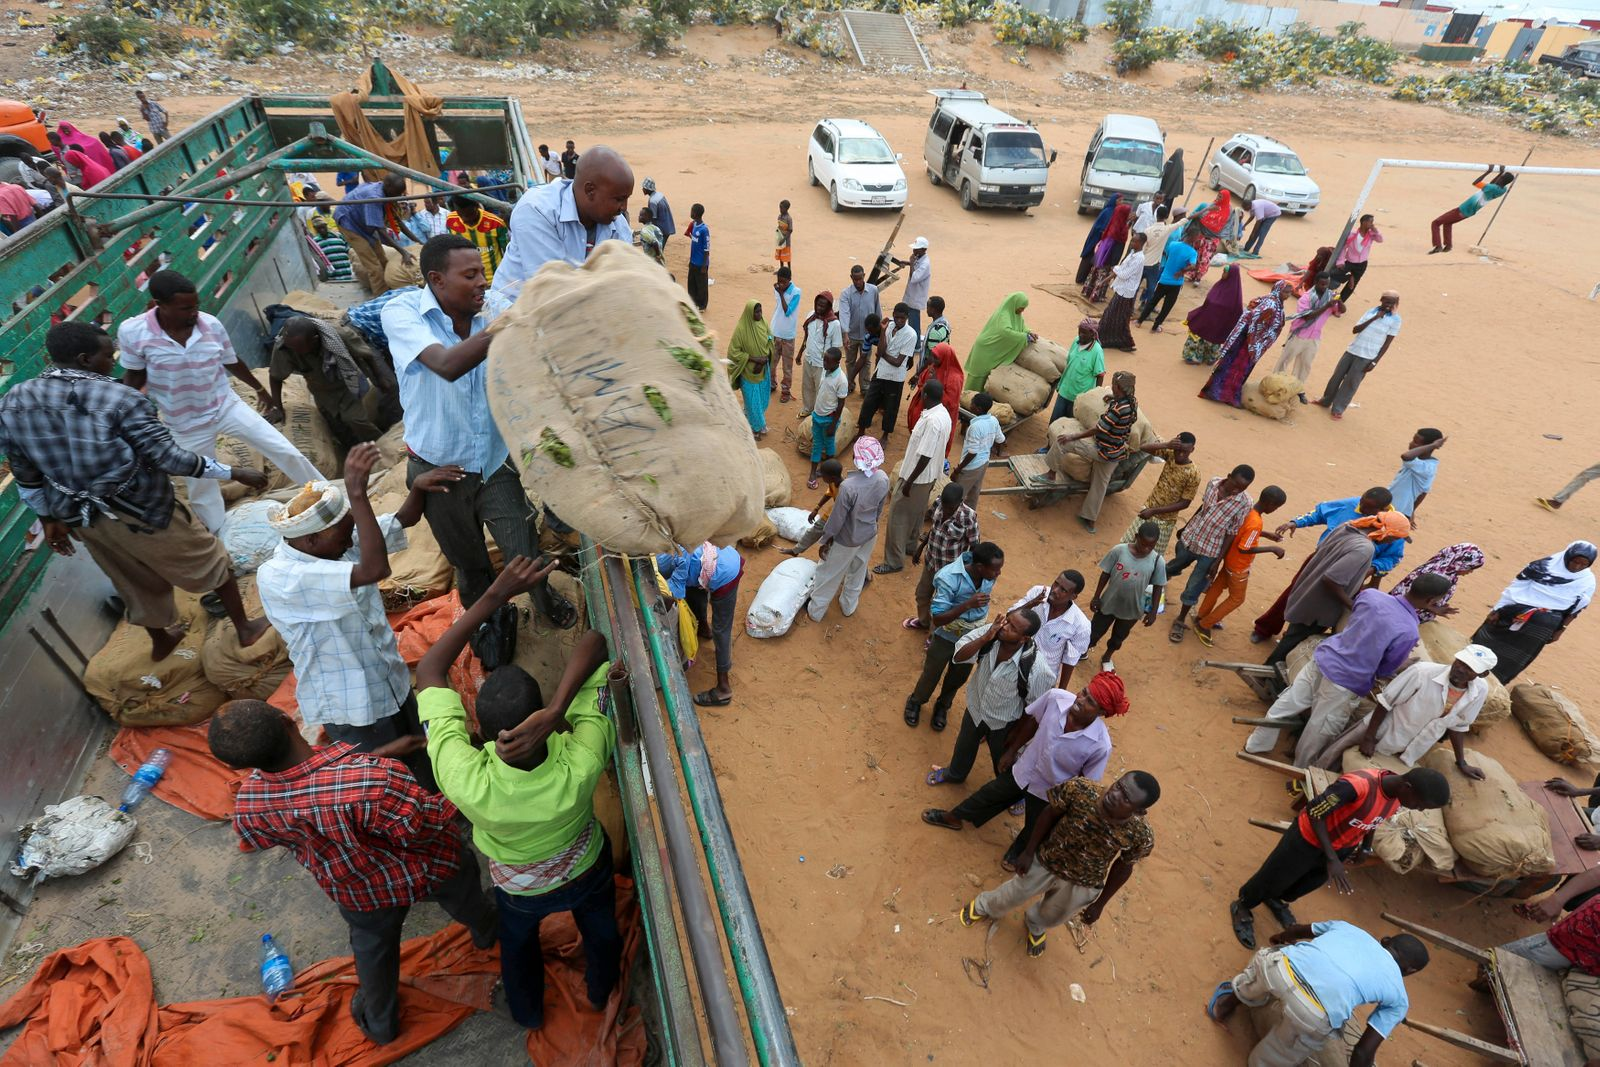 Porters gather around a truck carrying khat in Mogadishu